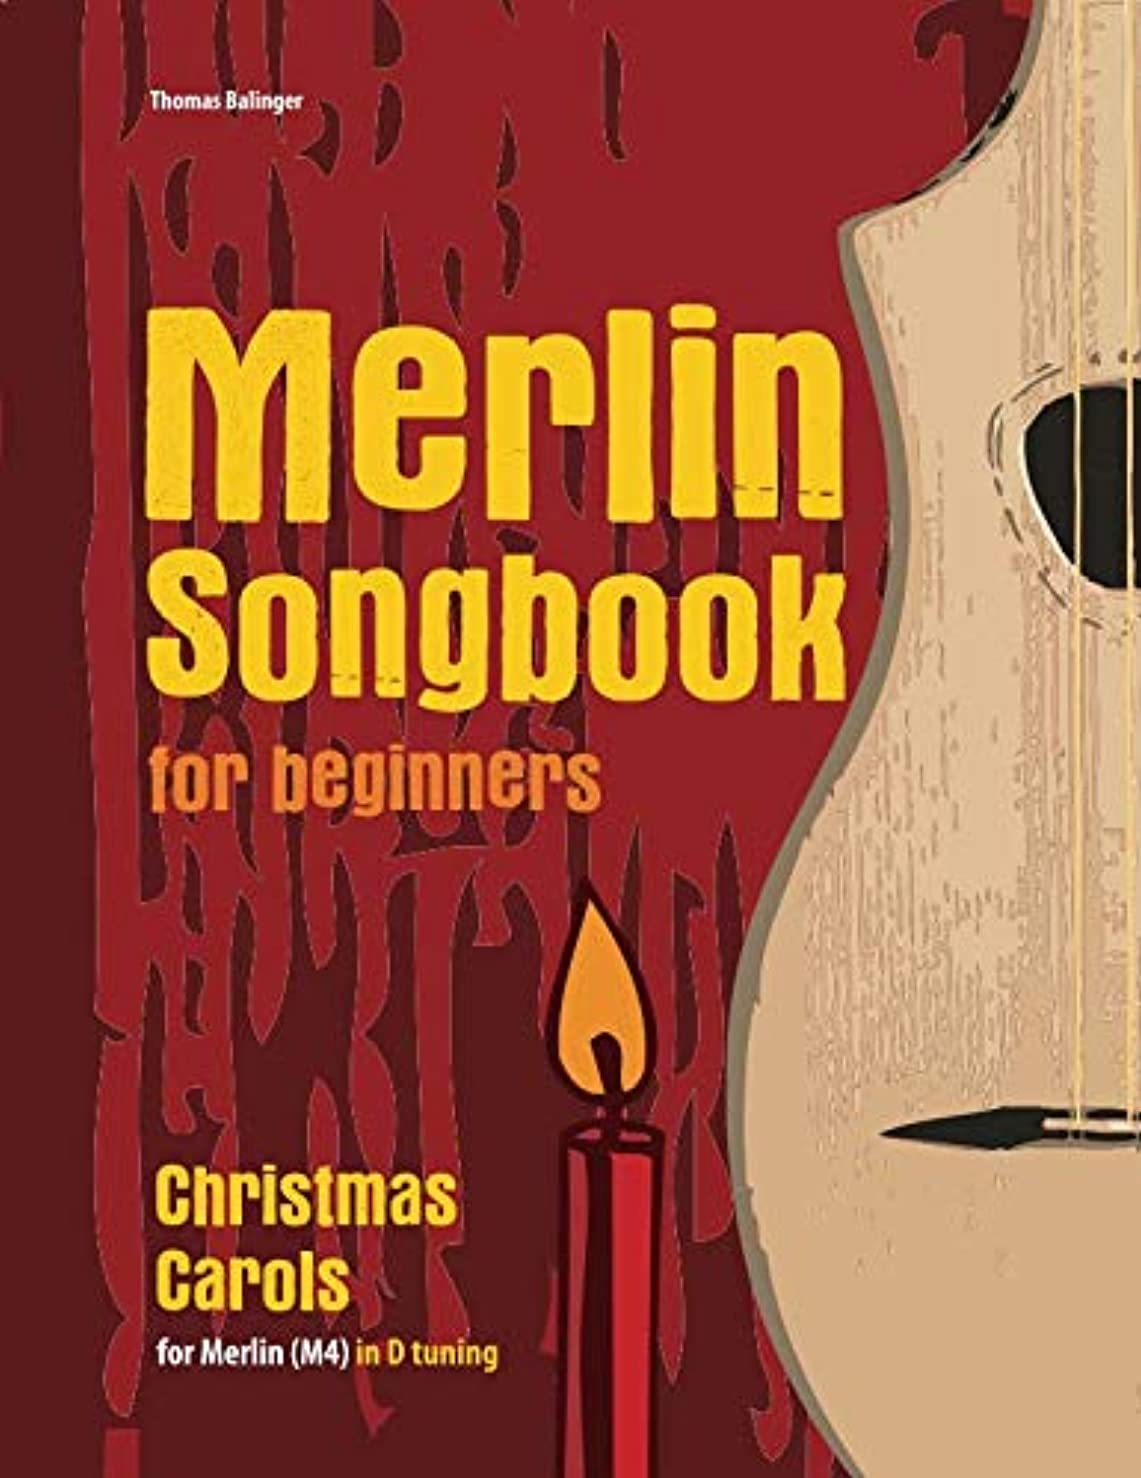 地元一回海賊Merlin Songbook for beginners: Christmas Carols for Merlin (M4) in D tuning (D-A-D)